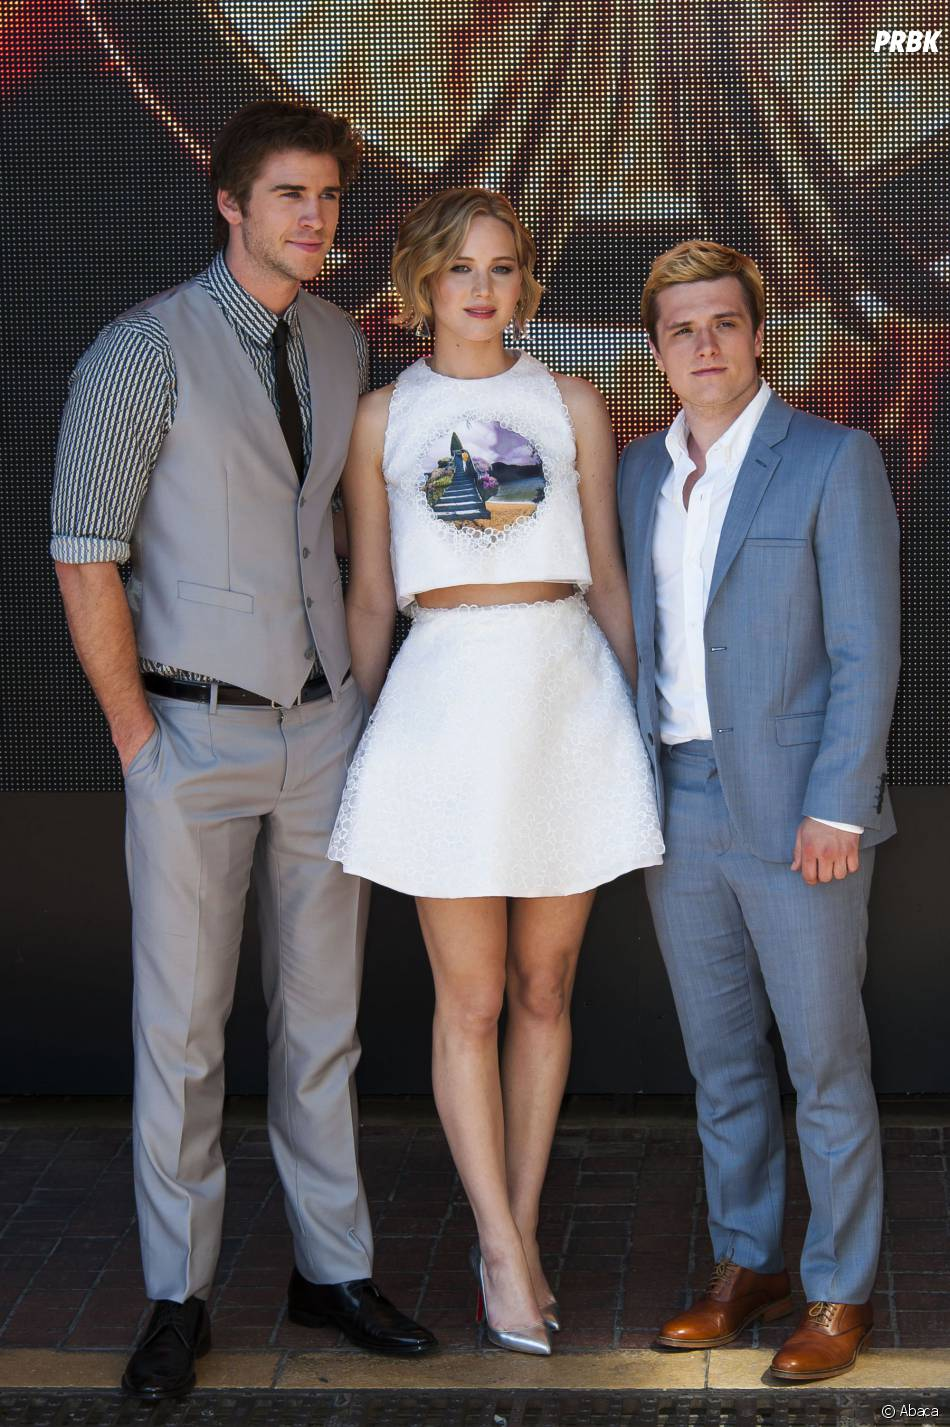 Liam Hemsworth, Jennifer Lawrence et Josh Hutcherson au photocall d'Hunger Games 3 au Festival de Cannes, le 17 mai 2014